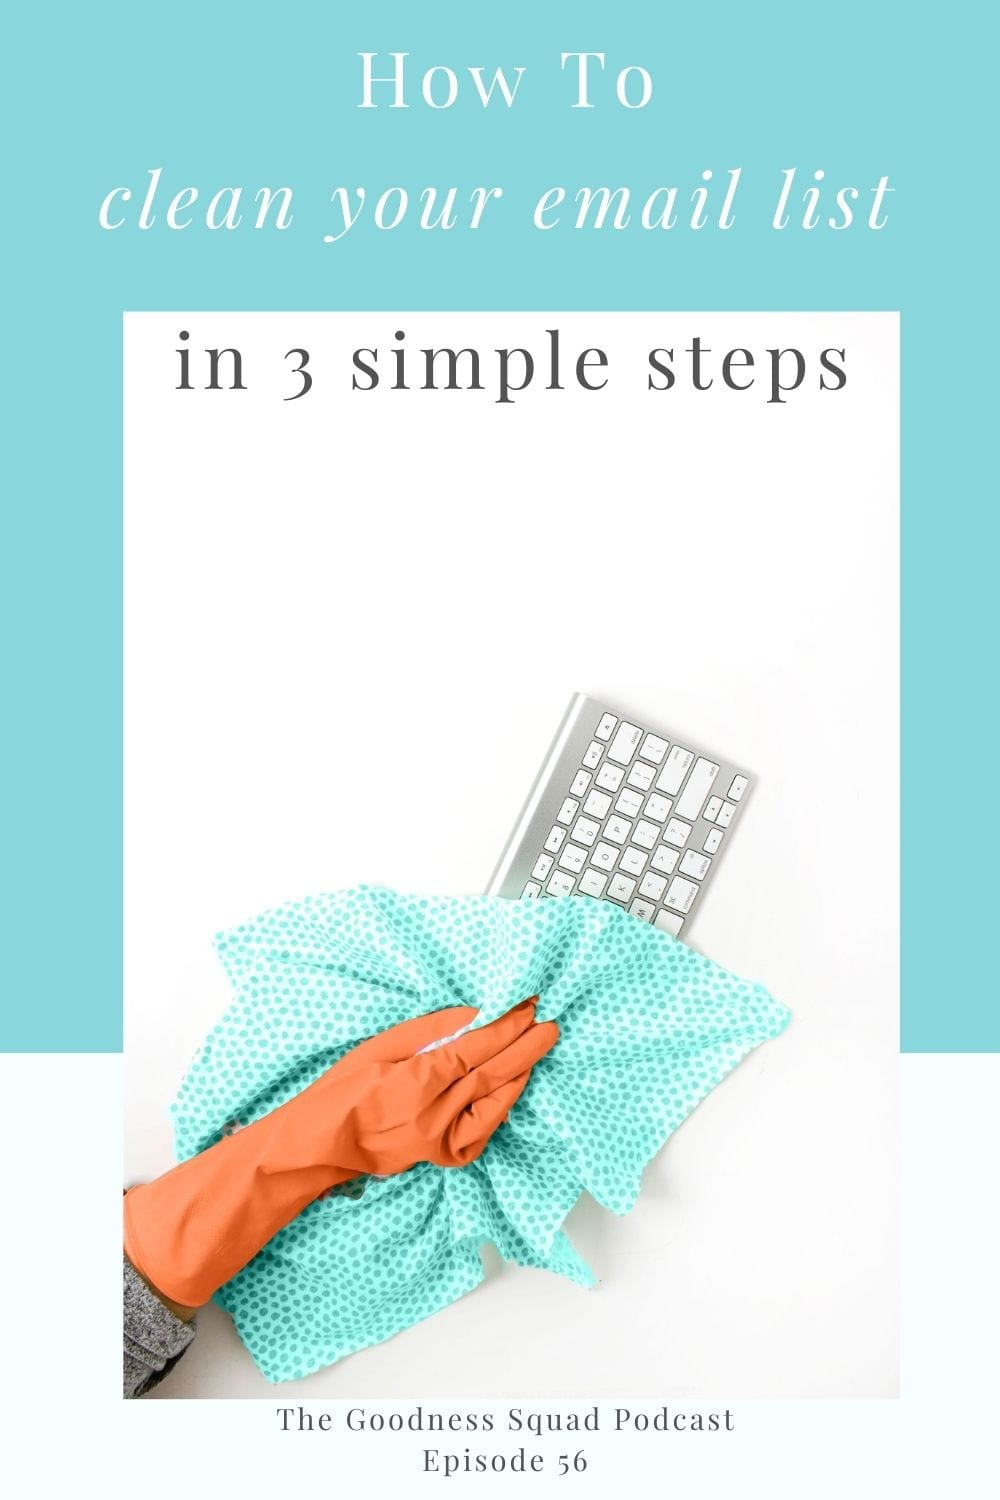 056_How to clean your email list the right way in 3 simple steps